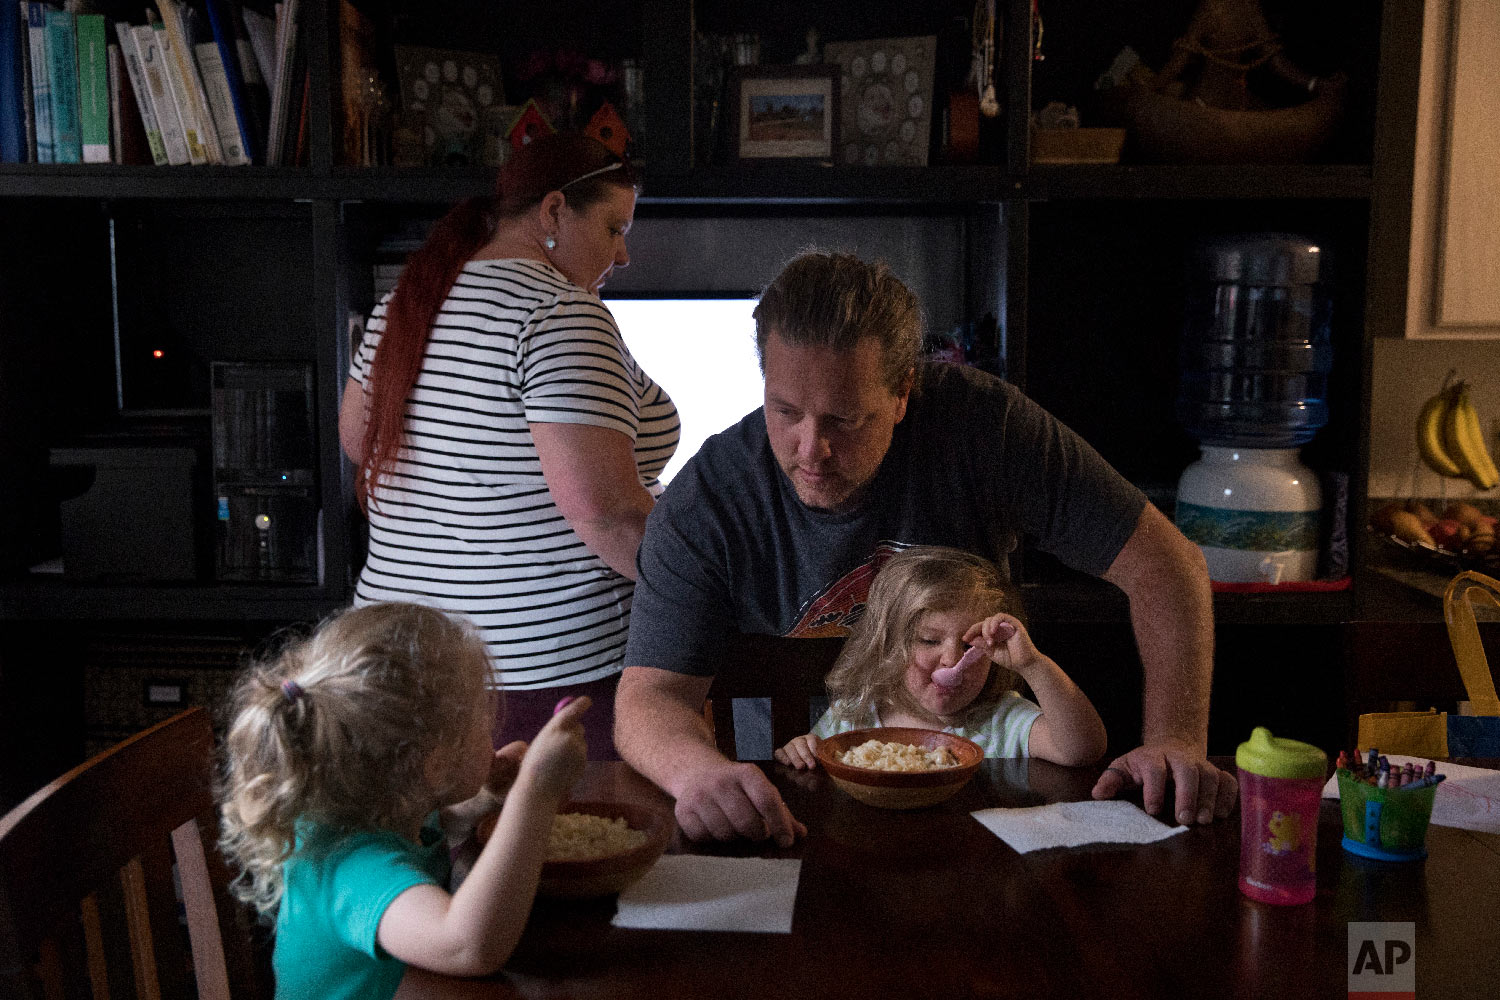 Middle-school English teacher Maryam Powers, left, works on her computer as her boyfriend, Jean-Paul Varagnat, chats with their two daughters around the dinner table in Salinas, Calif., Sept. 5, 2018. (AP Photo/Jae C. Hong)